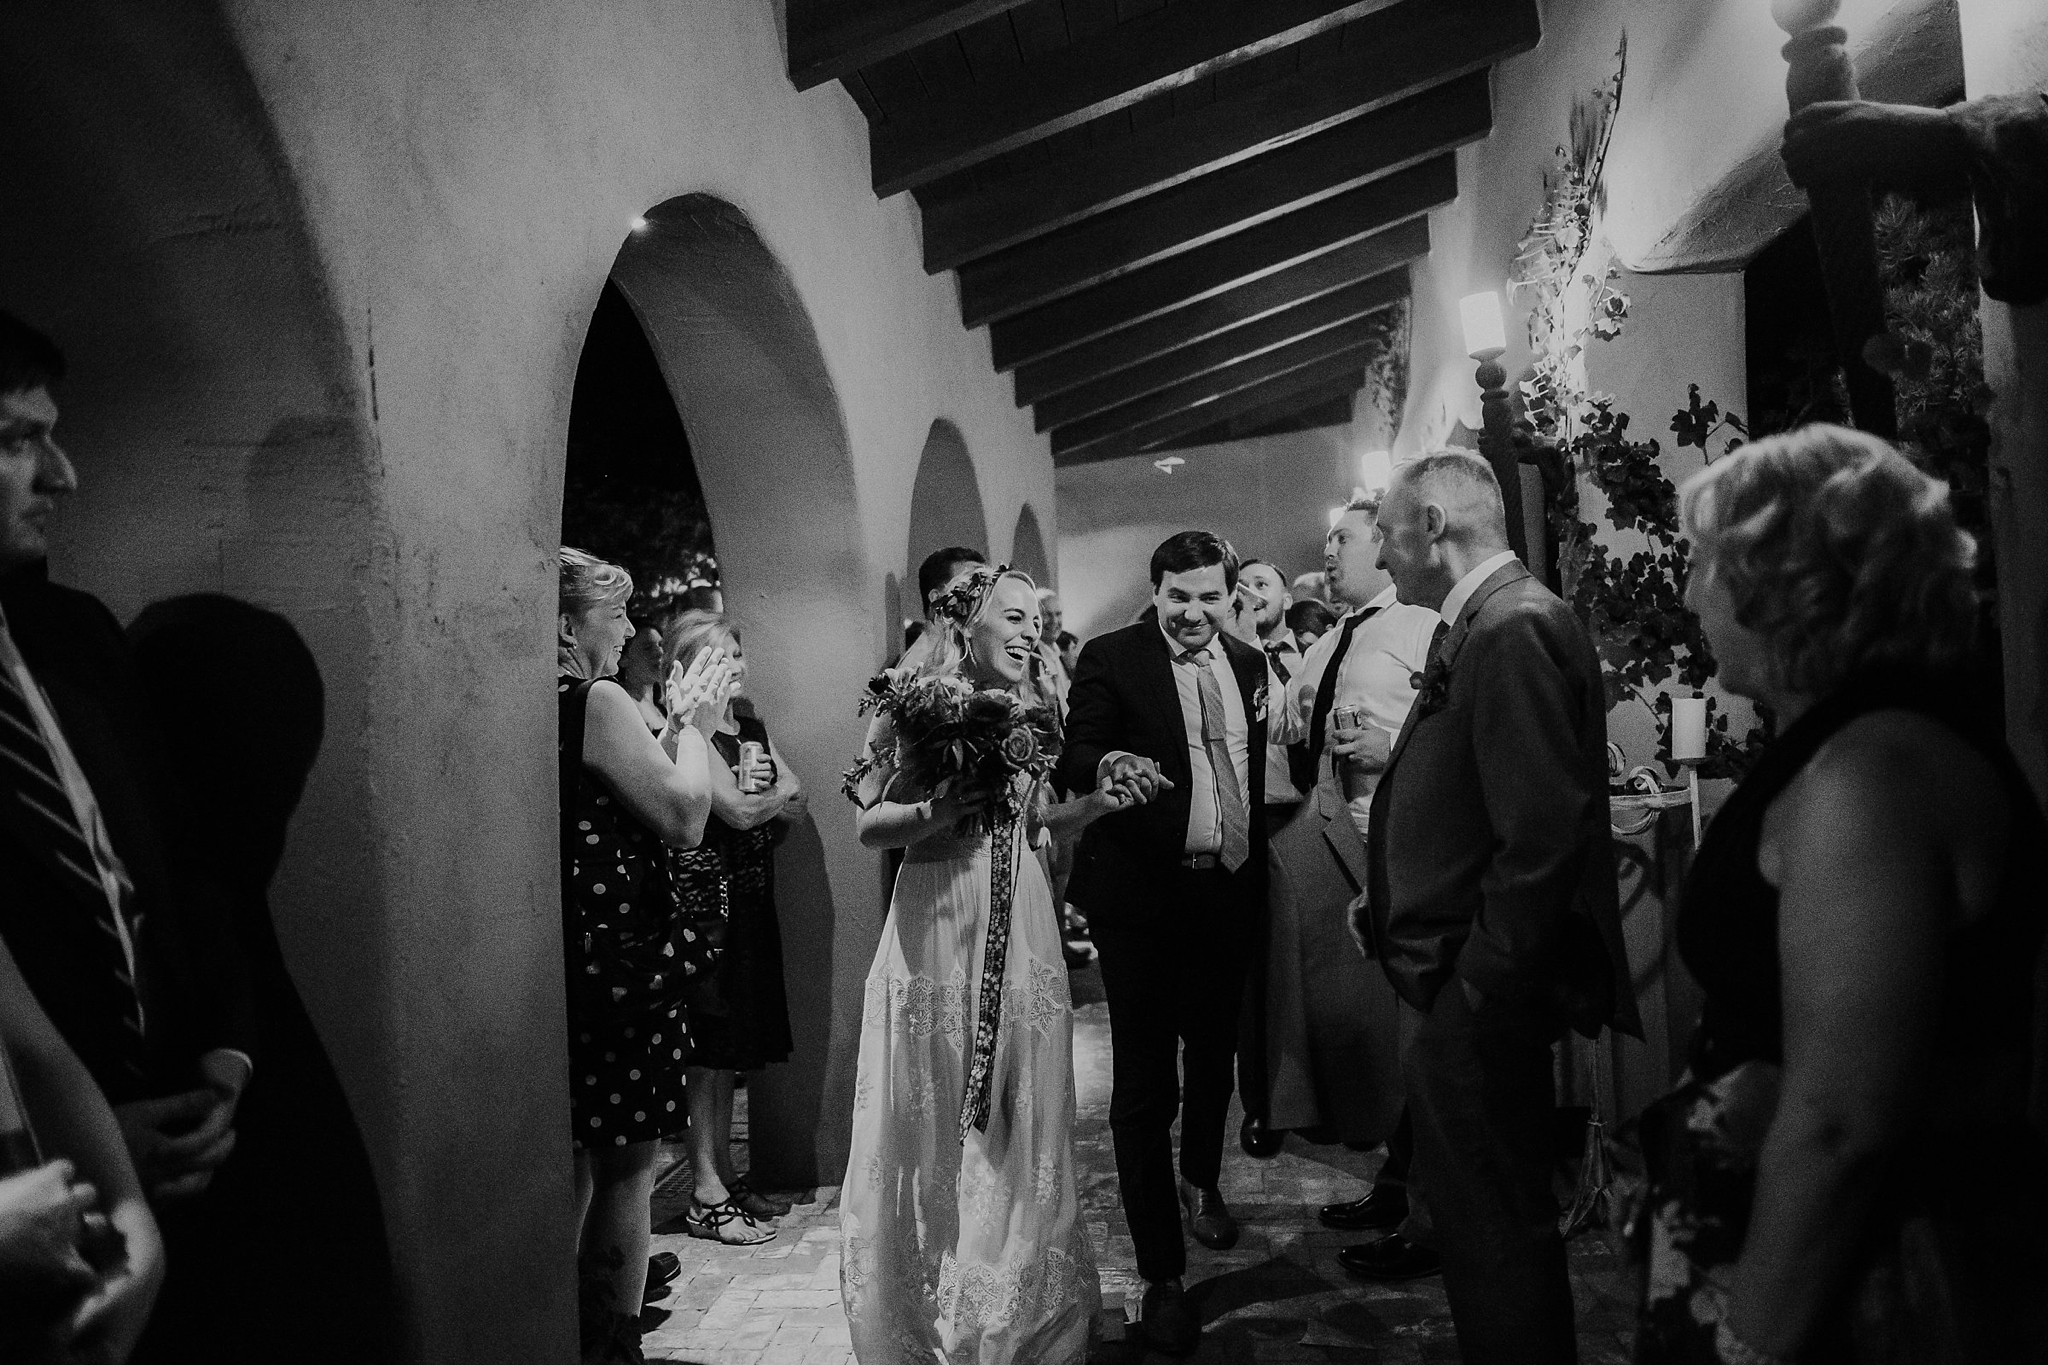 Alicia+lucia+photography+-+albuquerque+wedding+photographer+-+santa+fe+wedding+photography+-+new+mexico+wedding+photographer+-+new+mexico+wedding+-+wedding+venues+-+new+mexico+wedding+venues+-+colorado+wedding+venues_0100.jpg